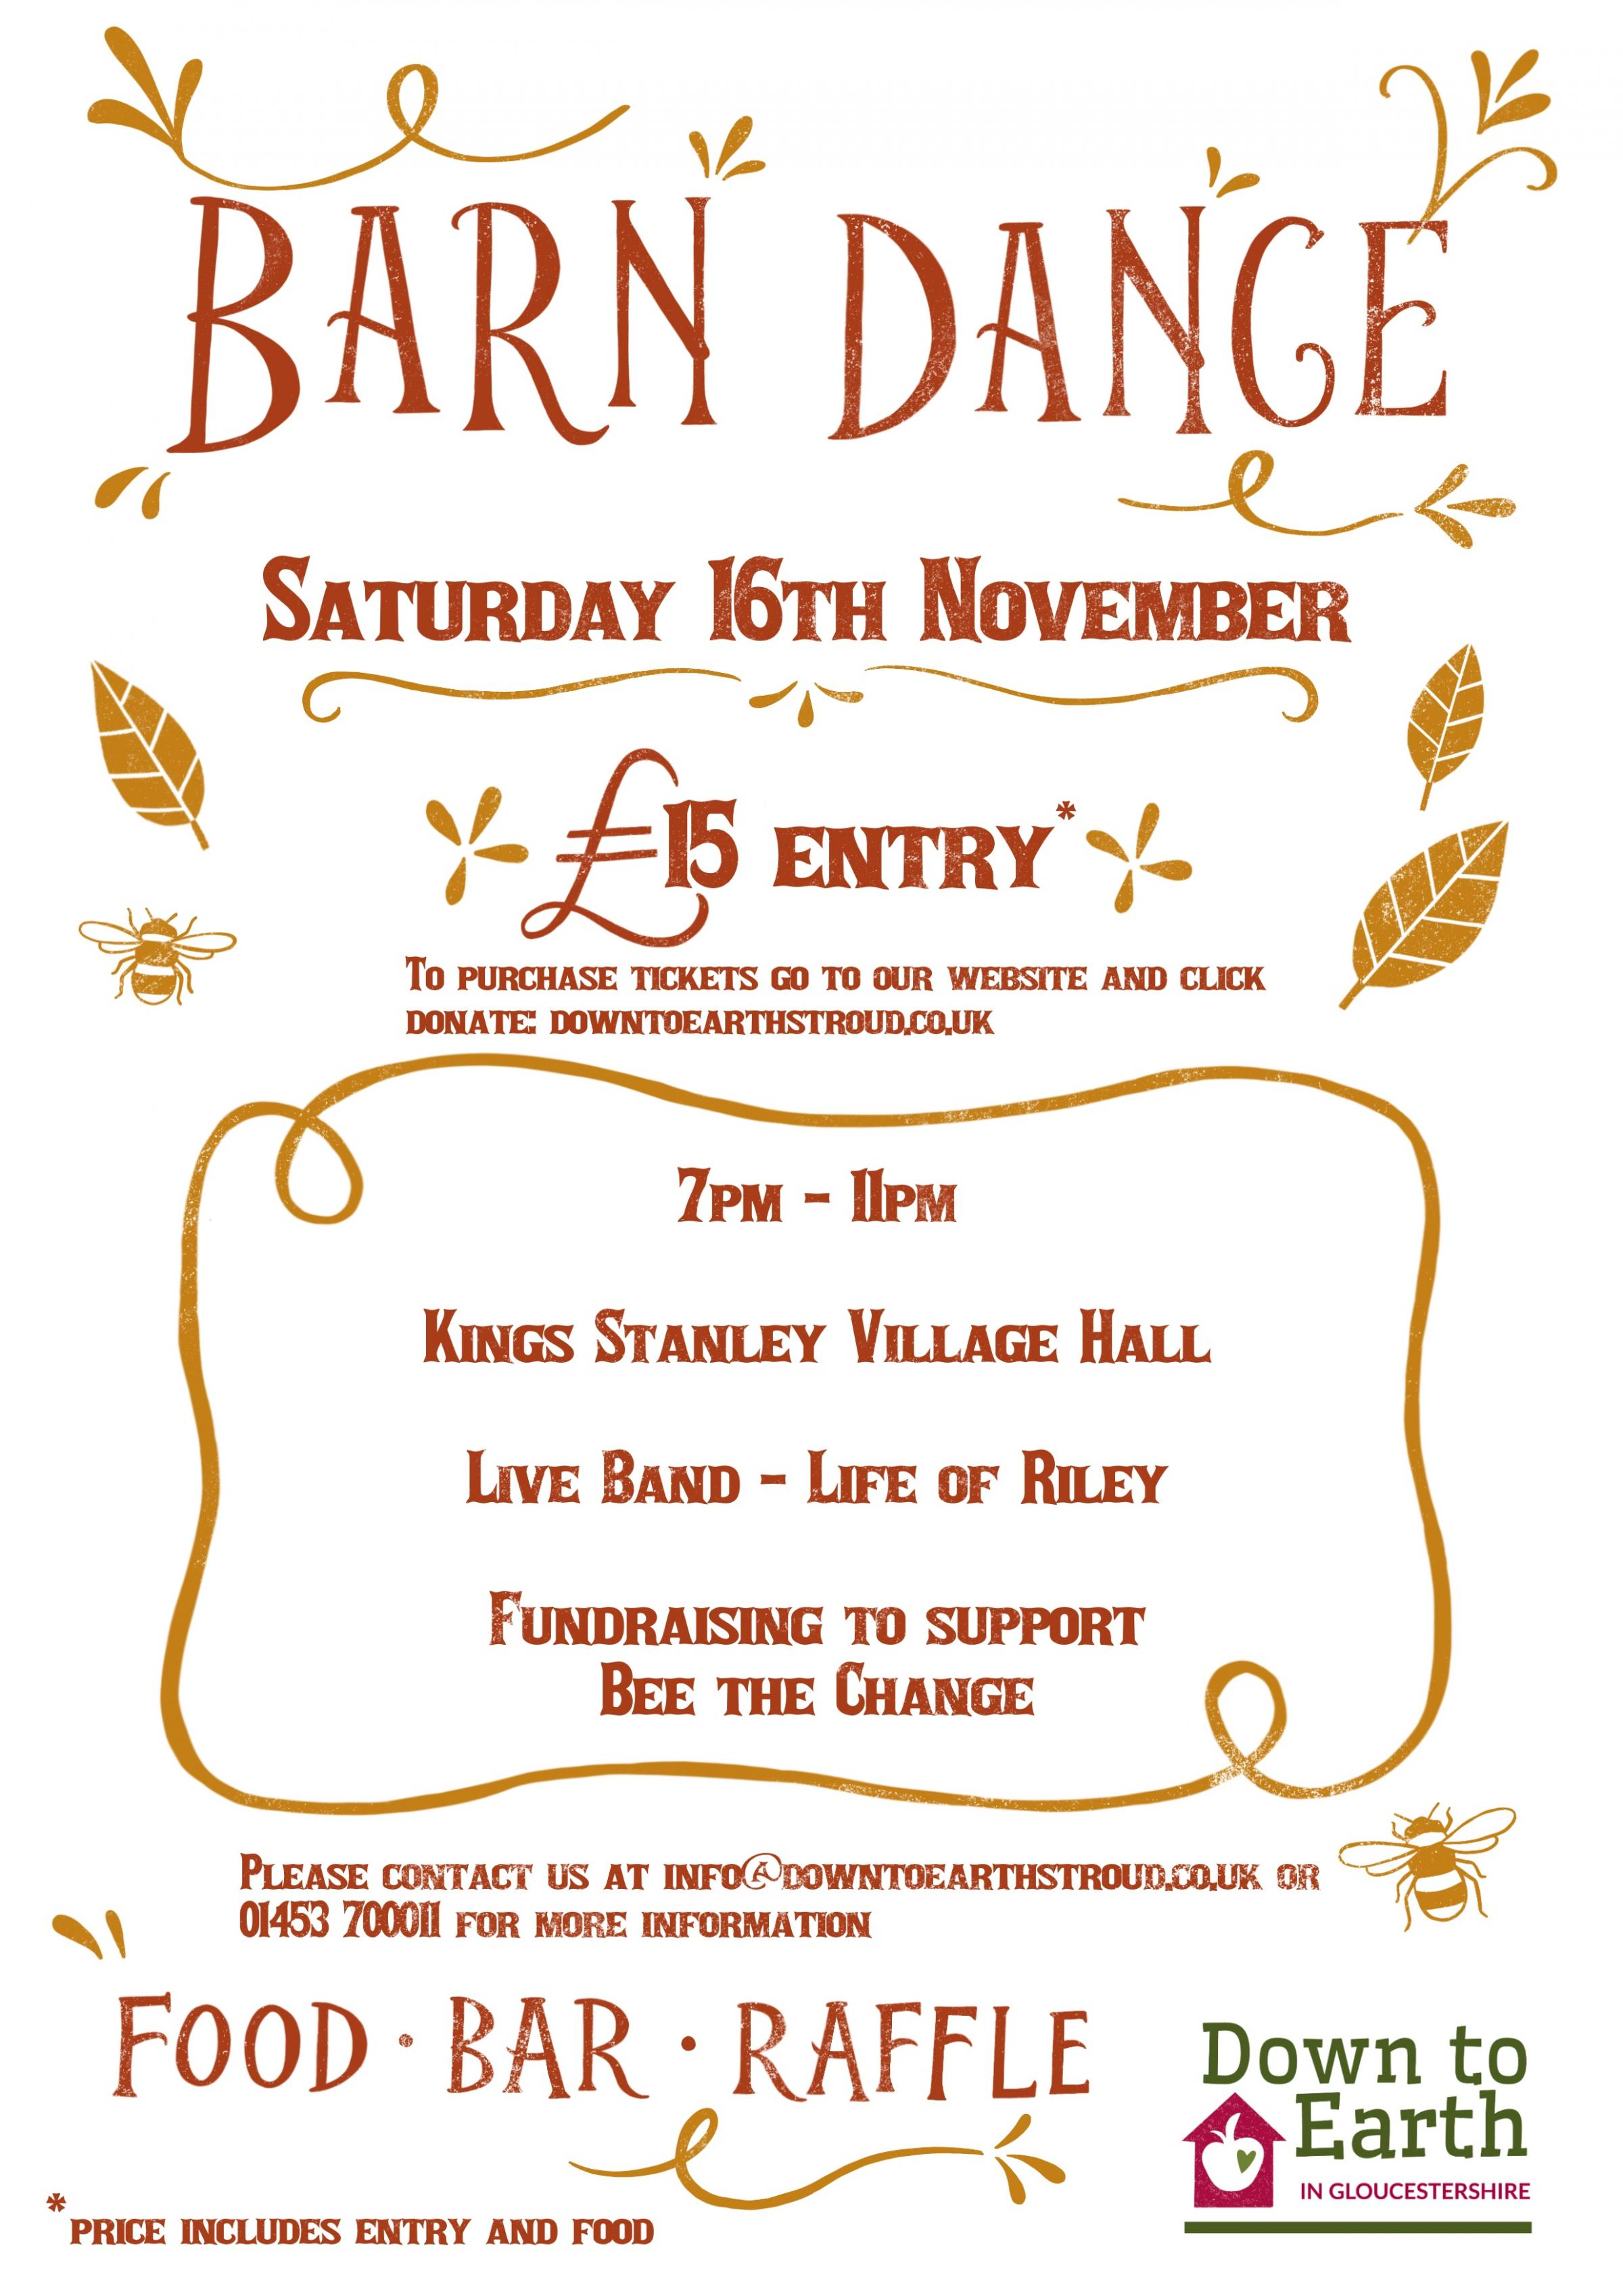 Barn Dance 'Save the Bees' Fundraiser!